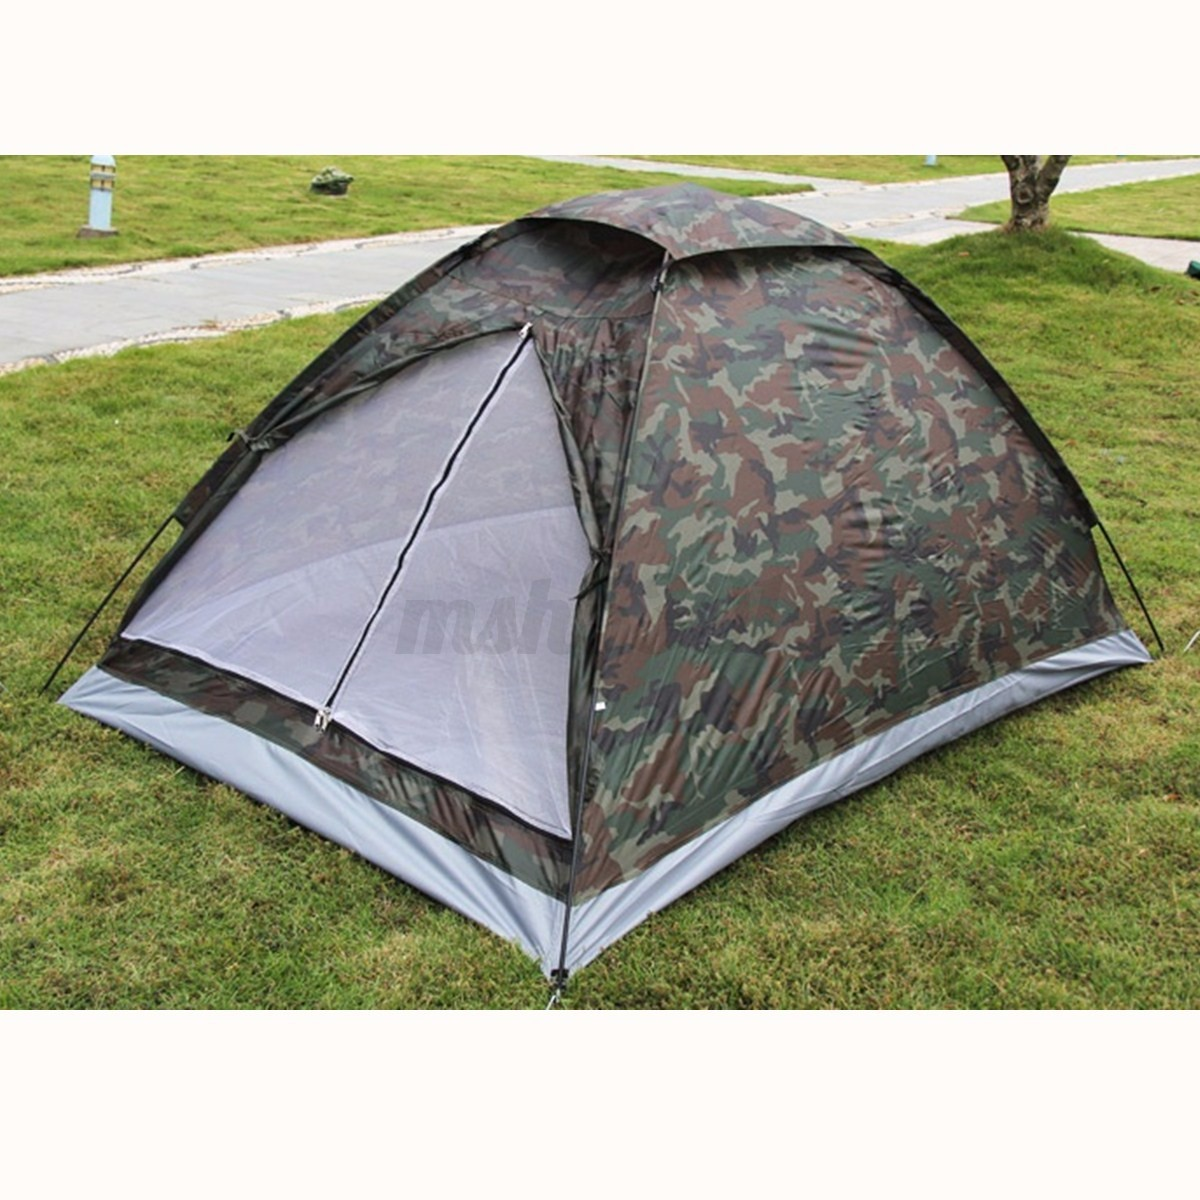 Waterproof 2 Person Camping Tent Traveling Outdoor Hiking ...